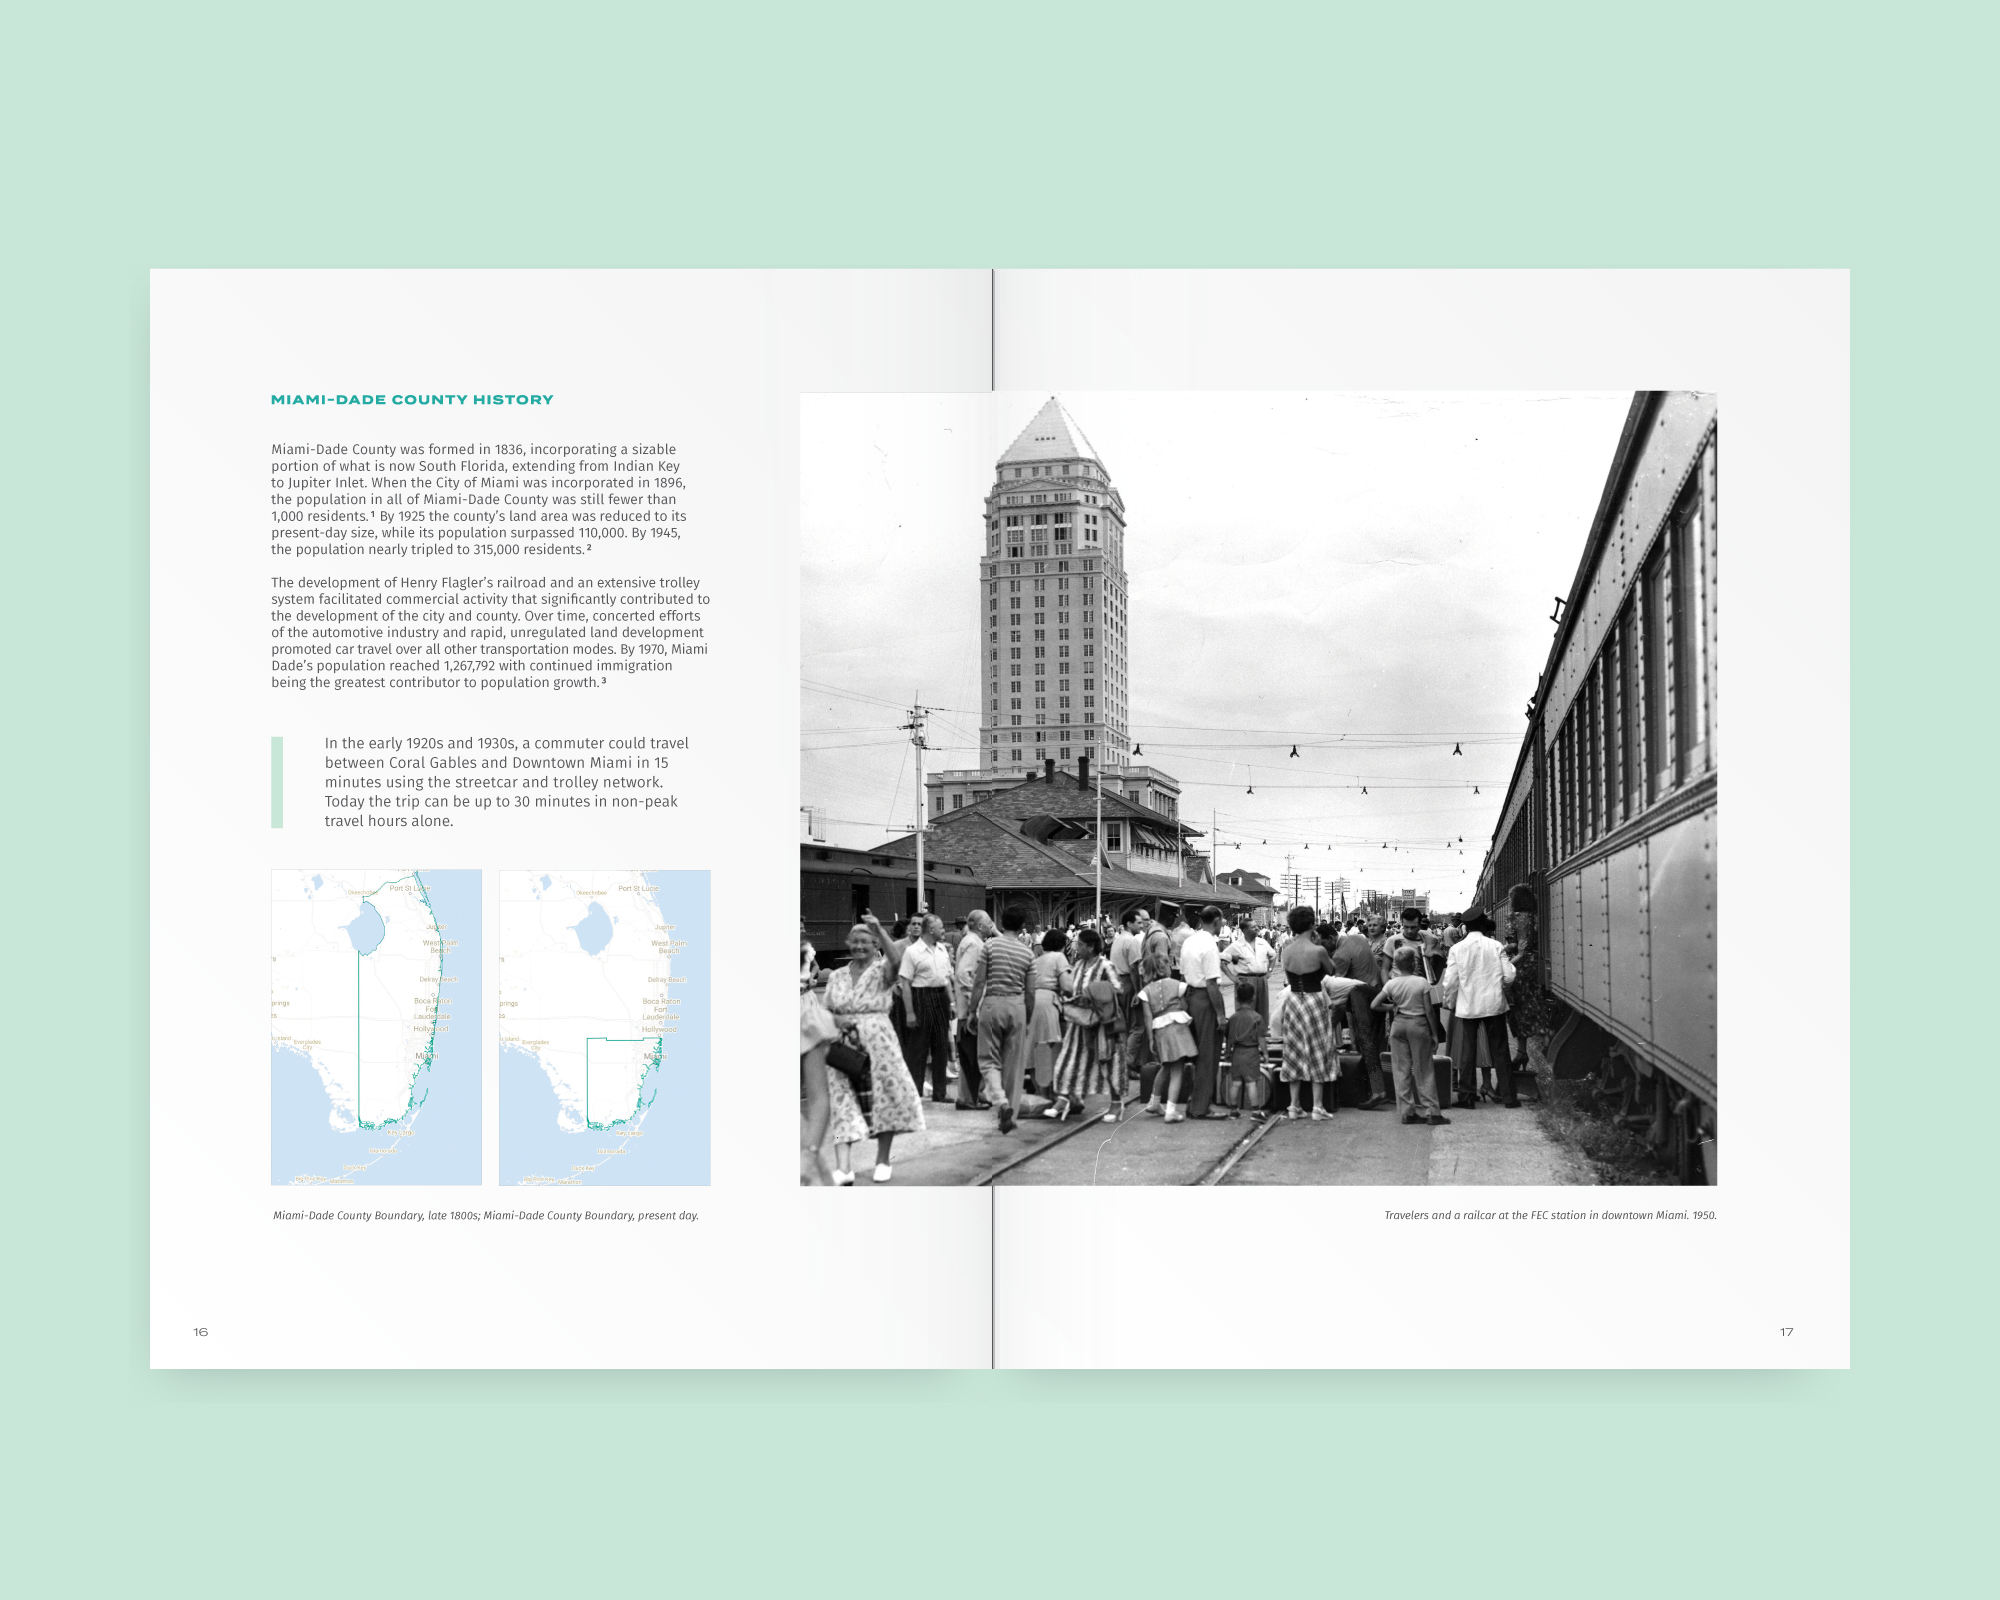 Handbook design—book layout showing historic images of Miami